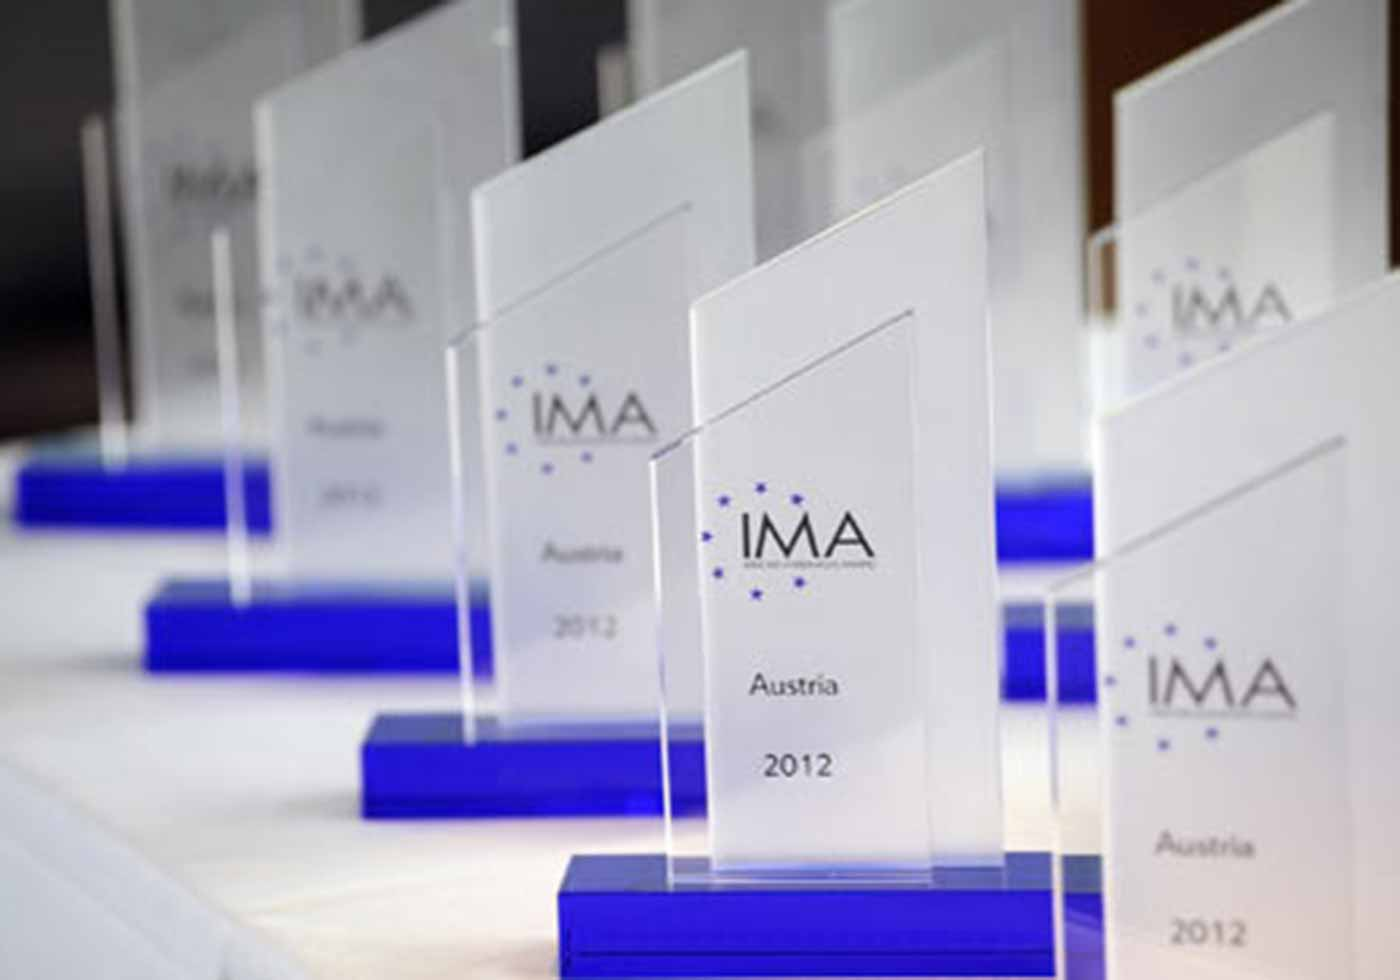 Immobilienmarken Award 2012, AT